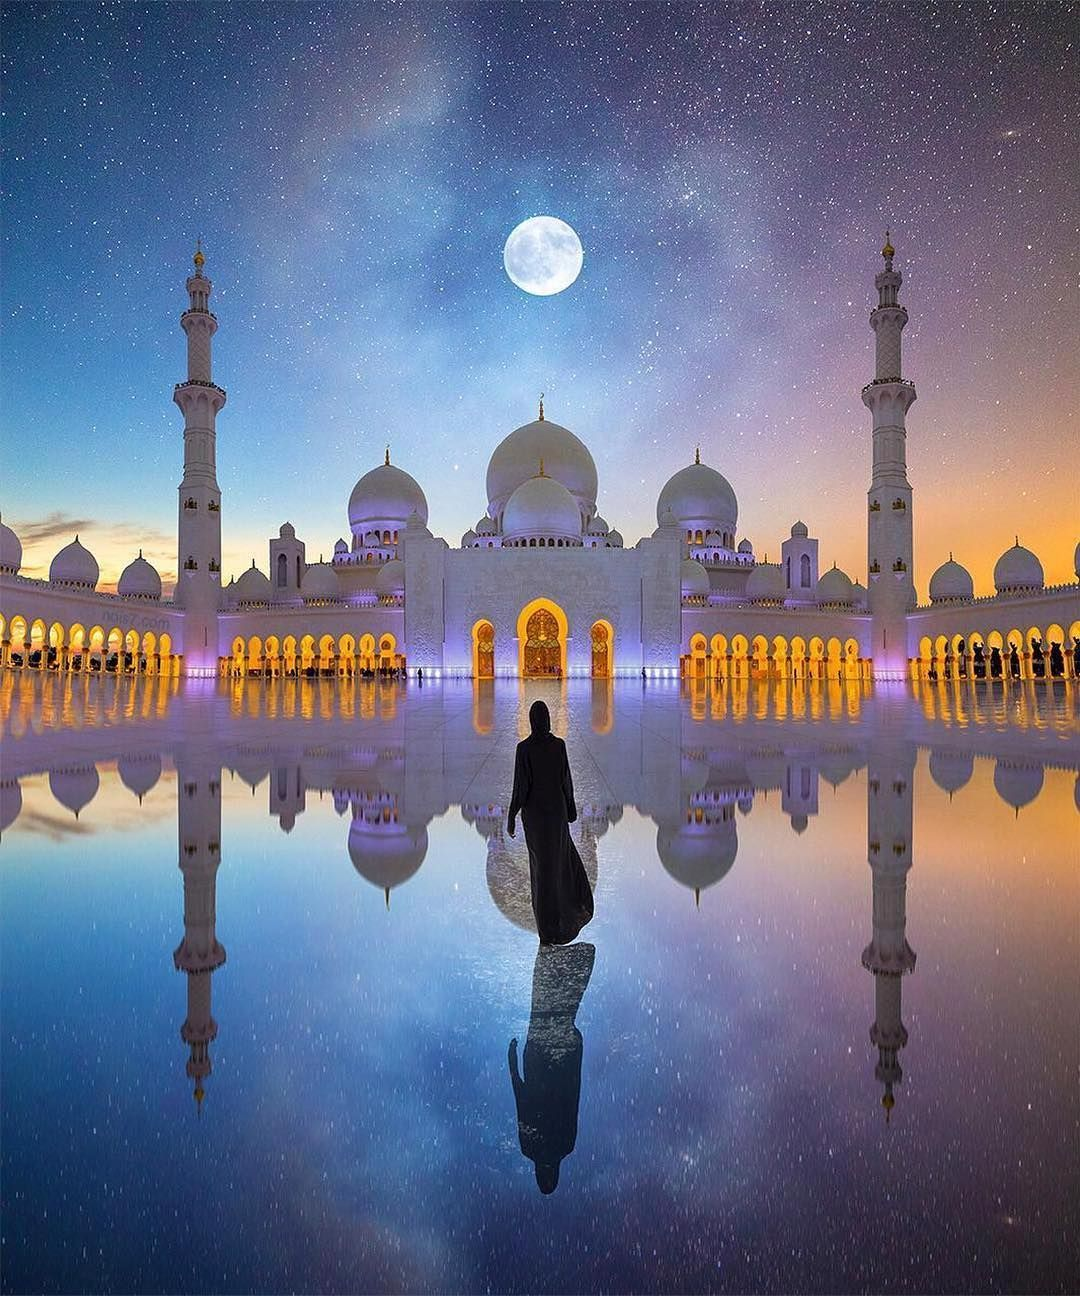 Sheikh Zayed Mosque Abu Dhabi United Arab Emirates Uae Travel Tourist Attraction Sightseeing Spots Su Grand Mosque Mosque Architecture Beautiful Mosques